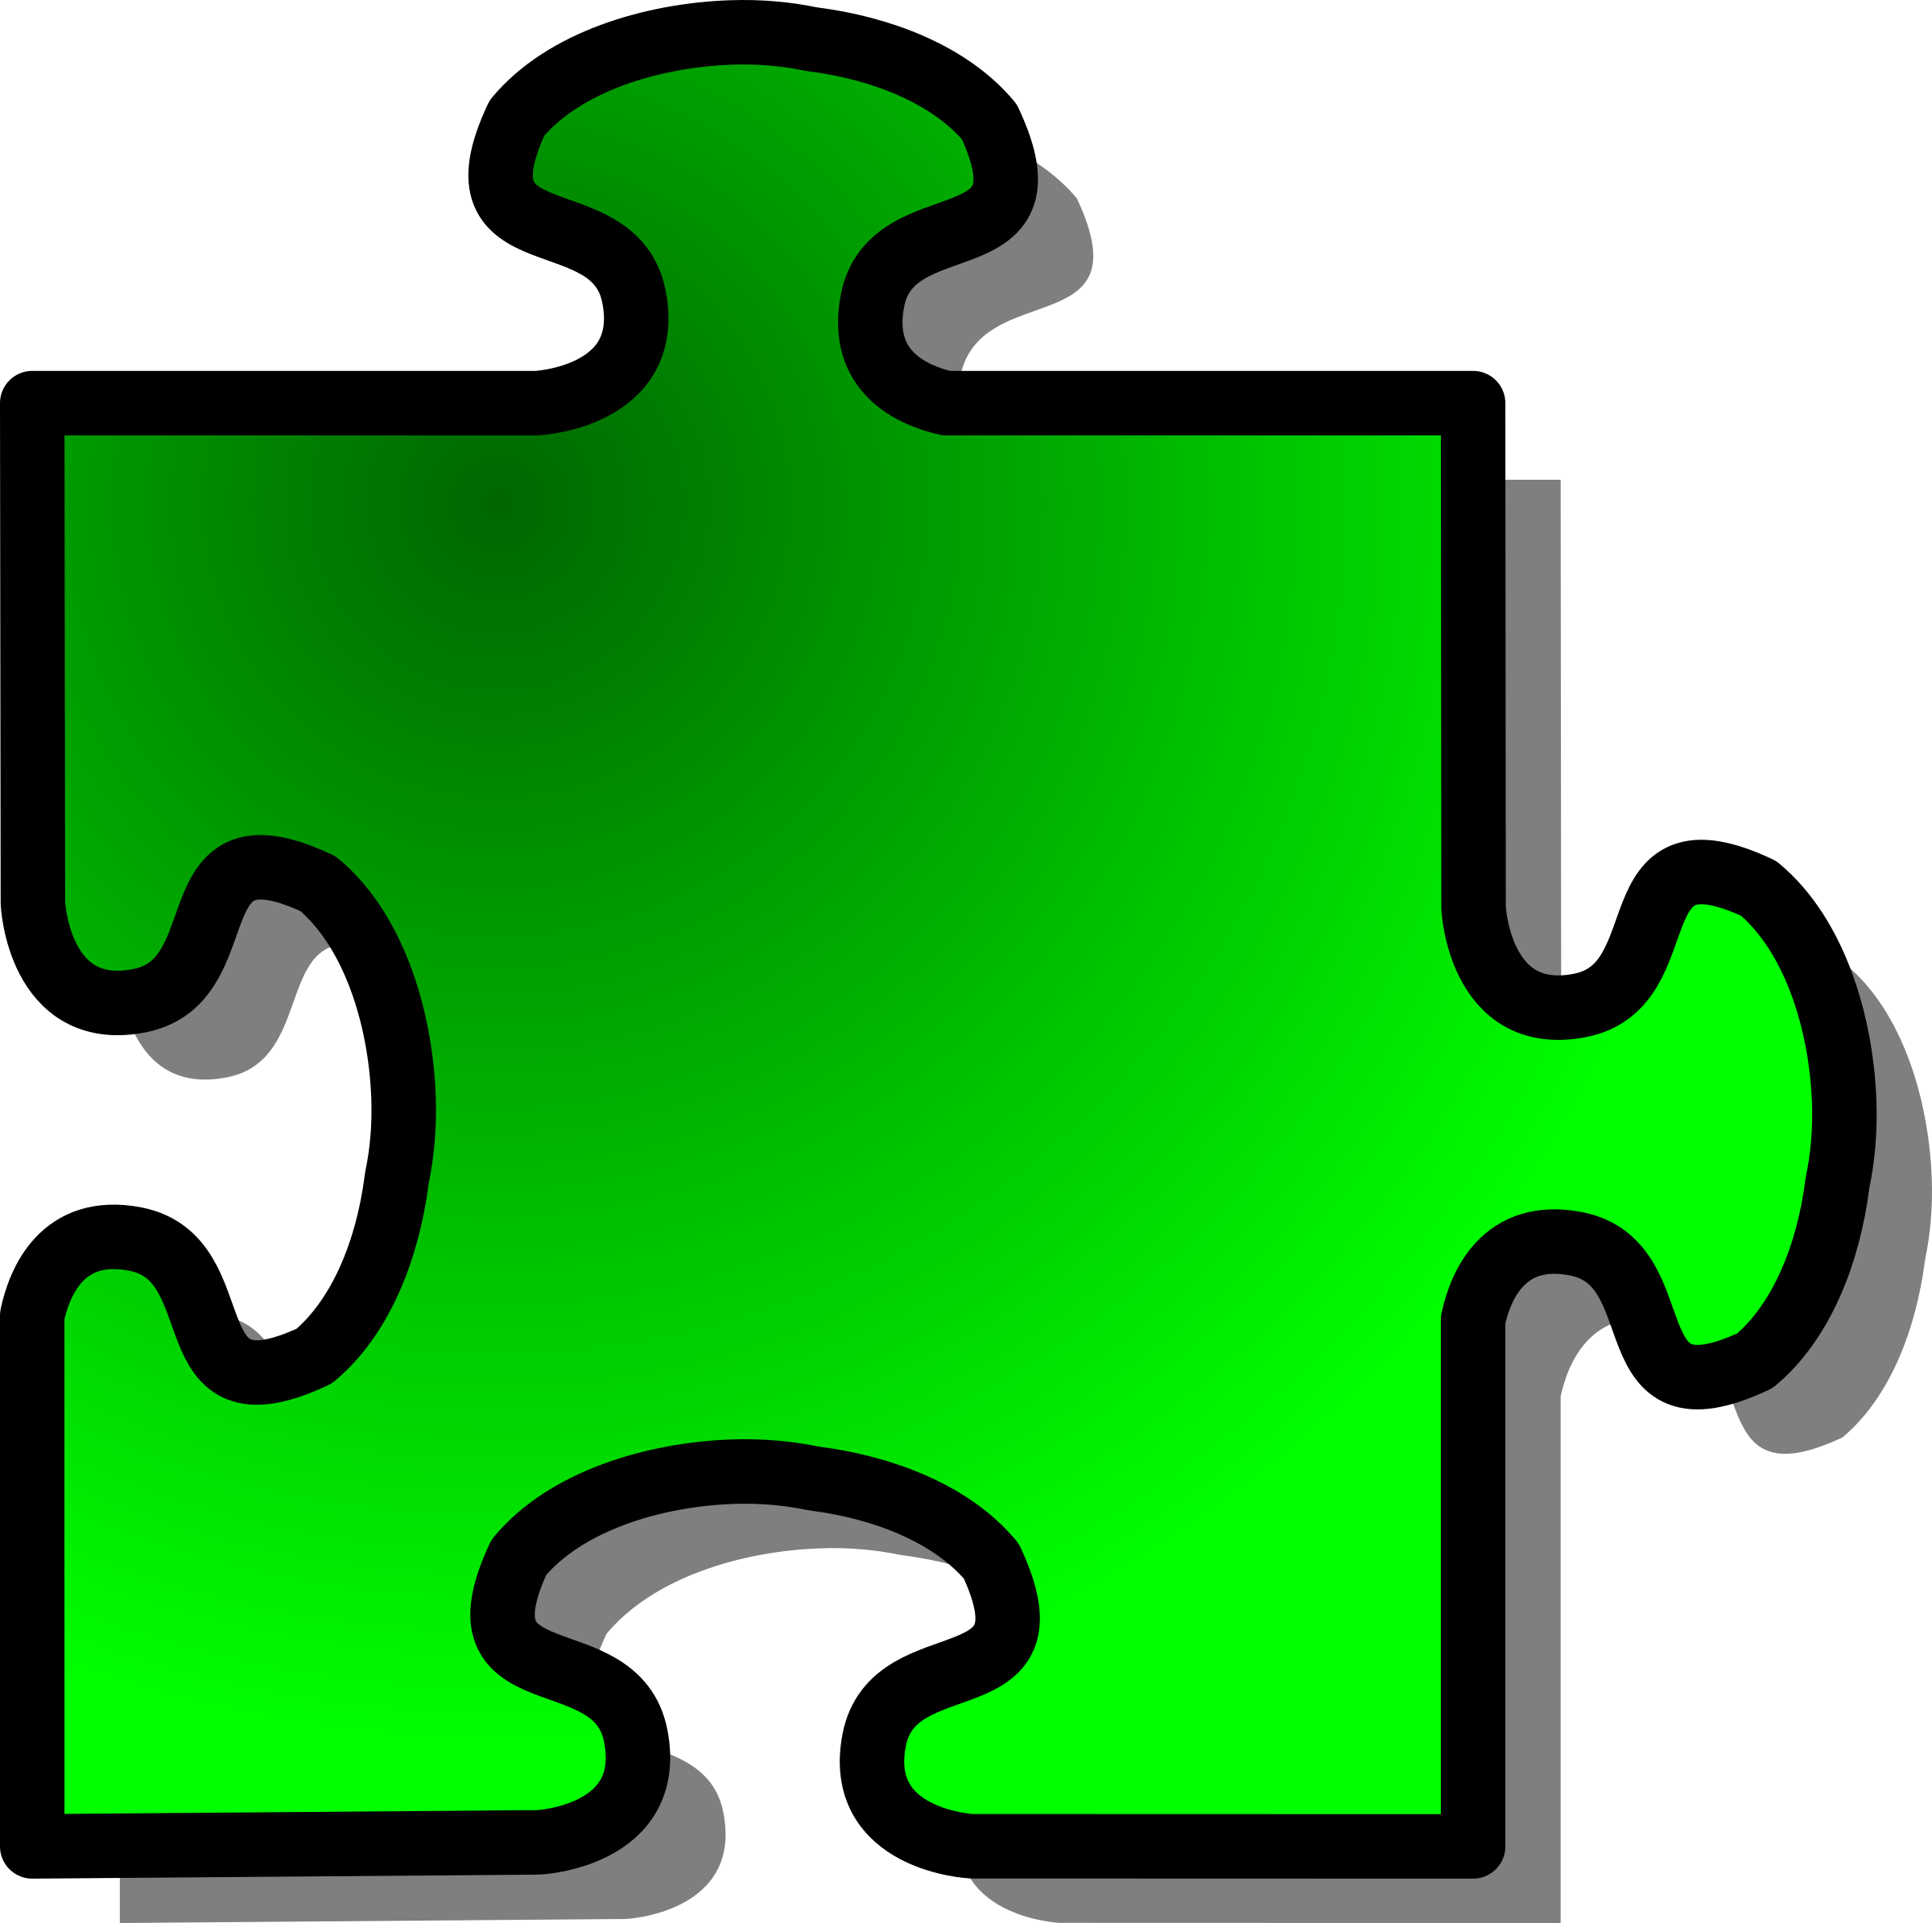 Green Jigsaw piece 09 by nicubunu